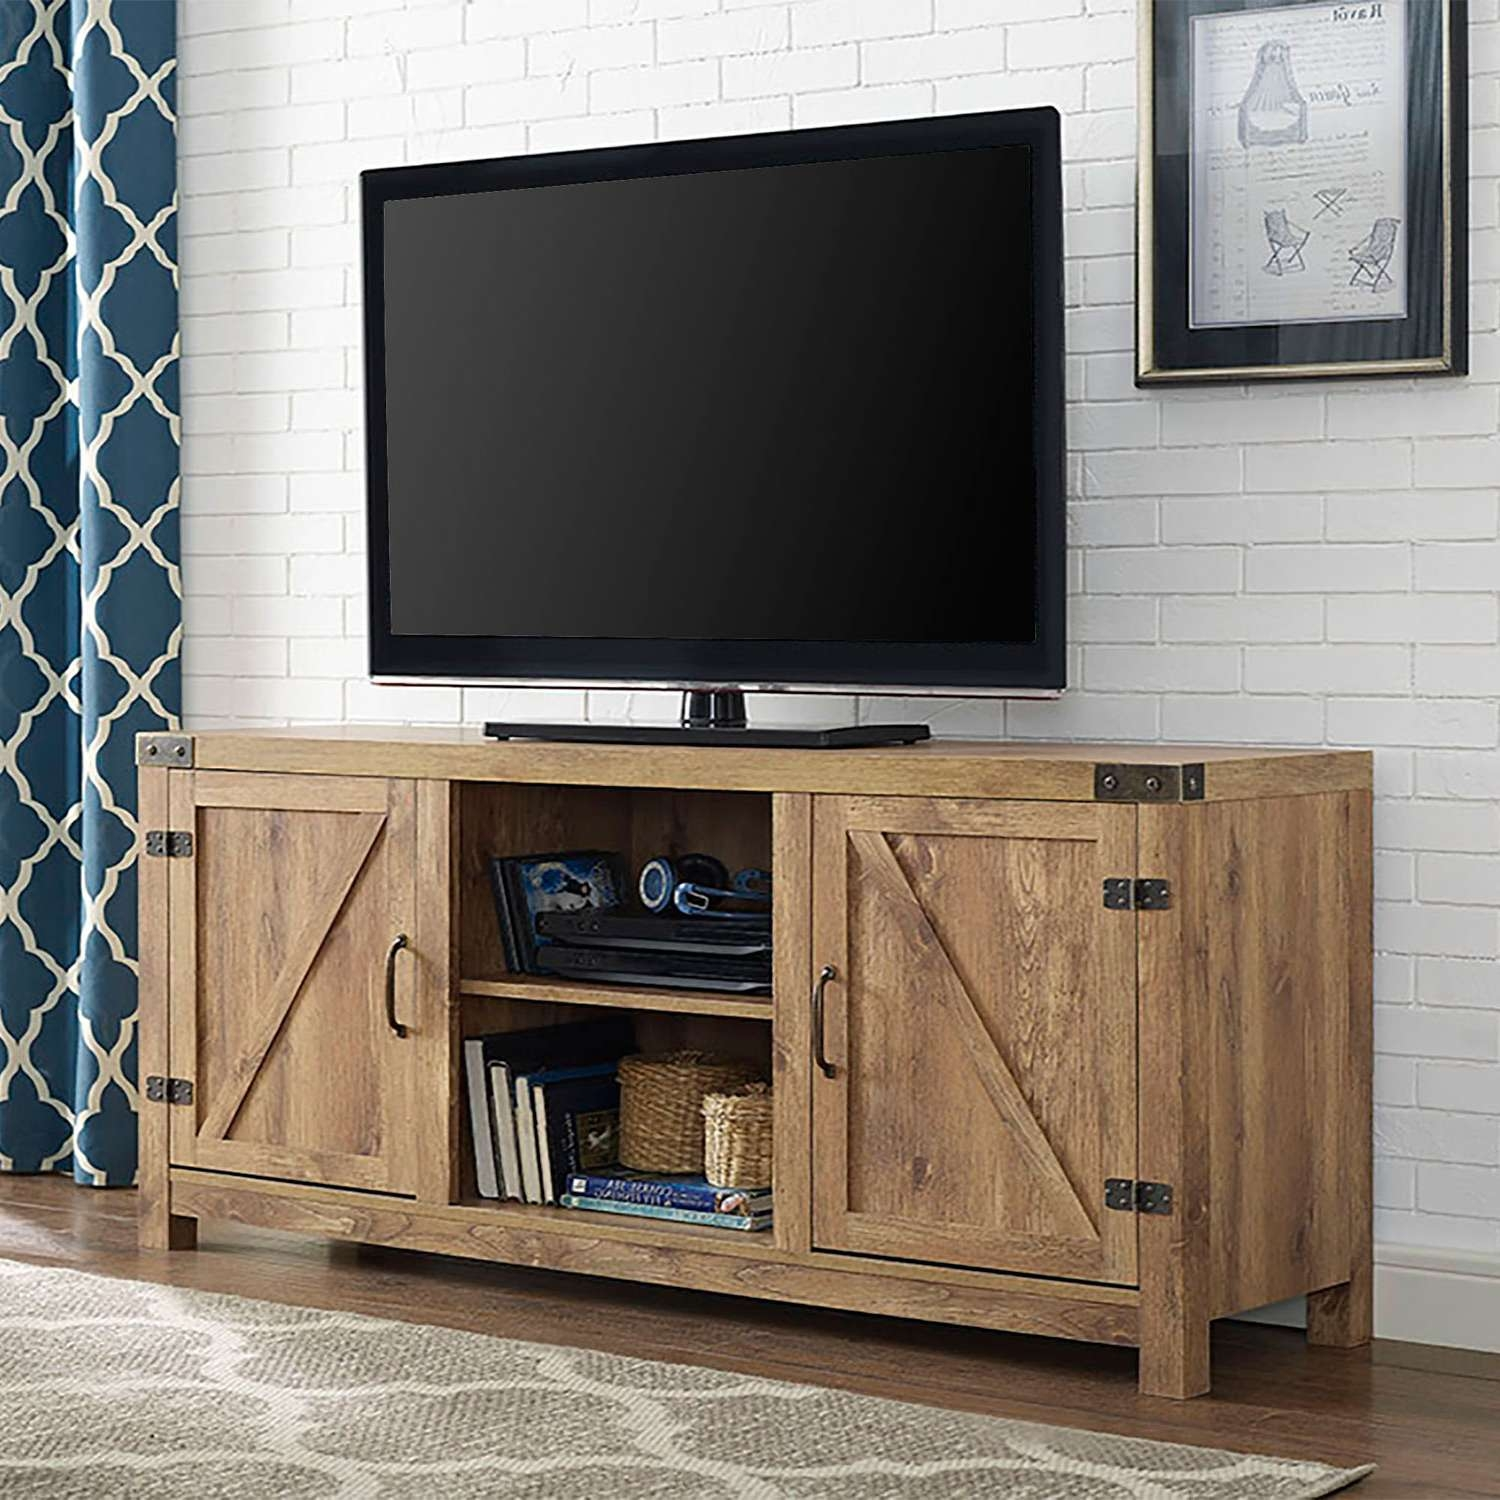 Tv Stand : Corner Tv Stand Inches High Fireplace For Inch Tvcorner Intended For Corner Tv Stands 40 Inch (View 15 of 20)